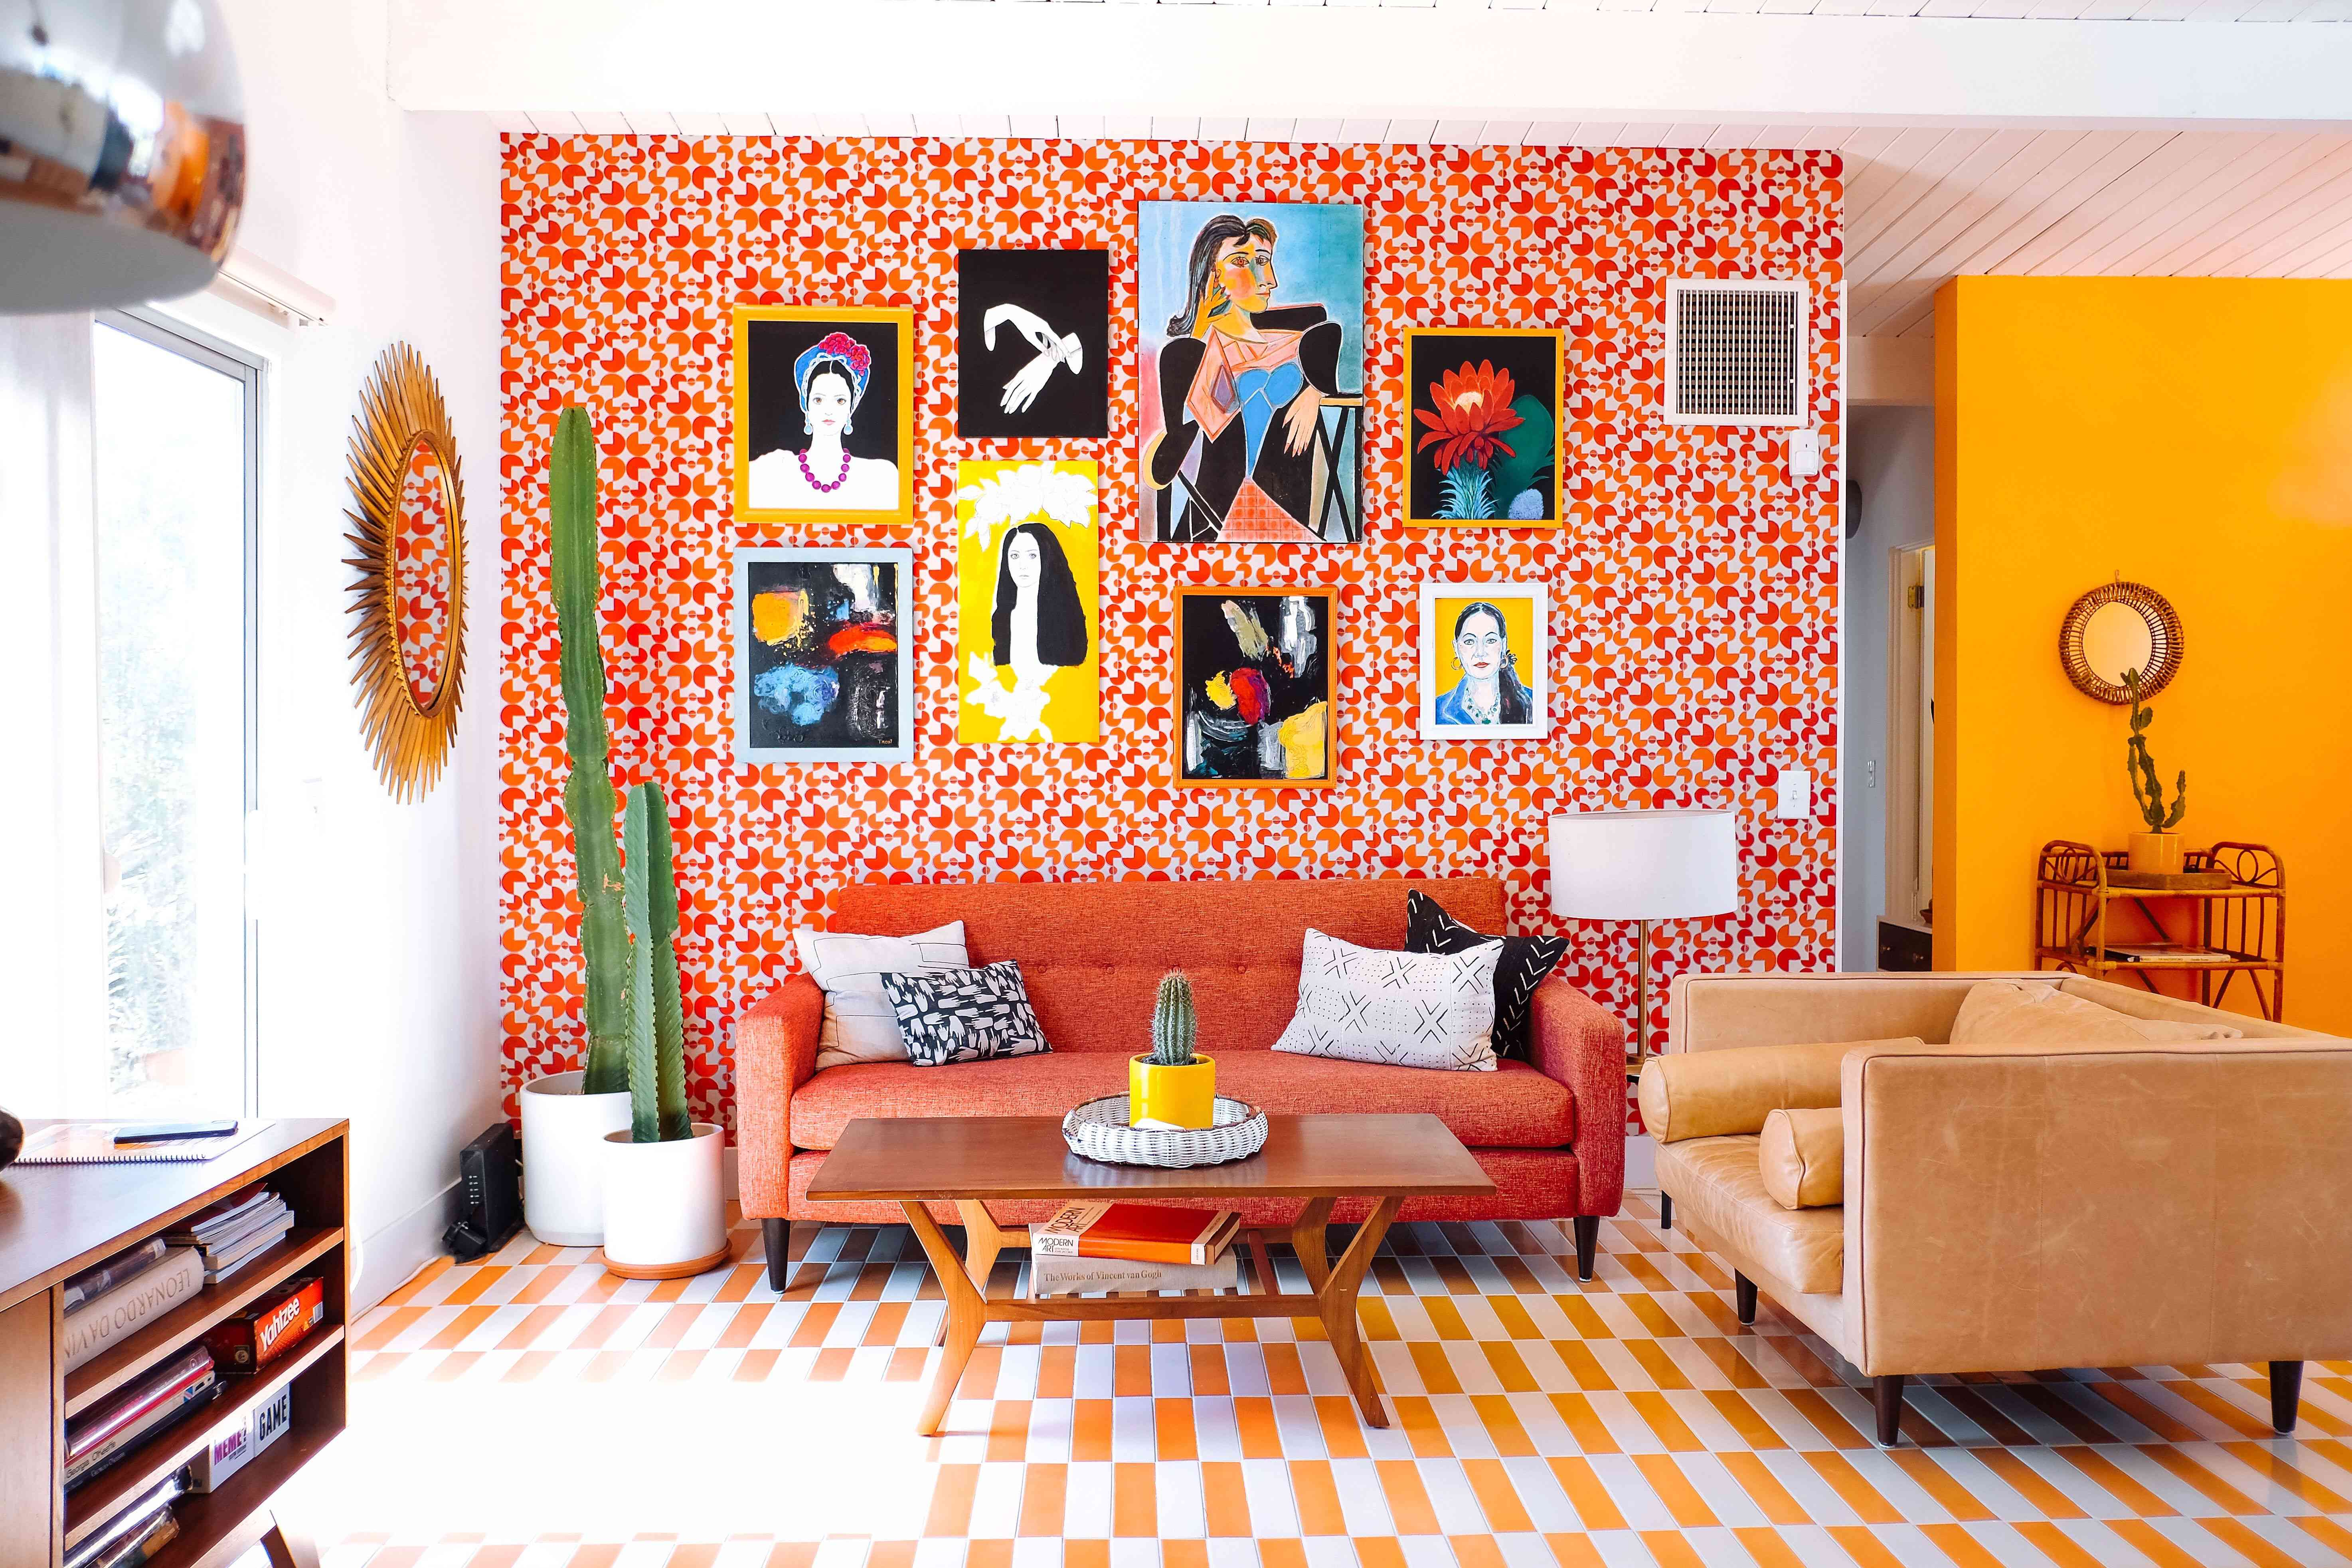 A living room with red printed wallpaper on the walls and a yellow striped rug on the floor